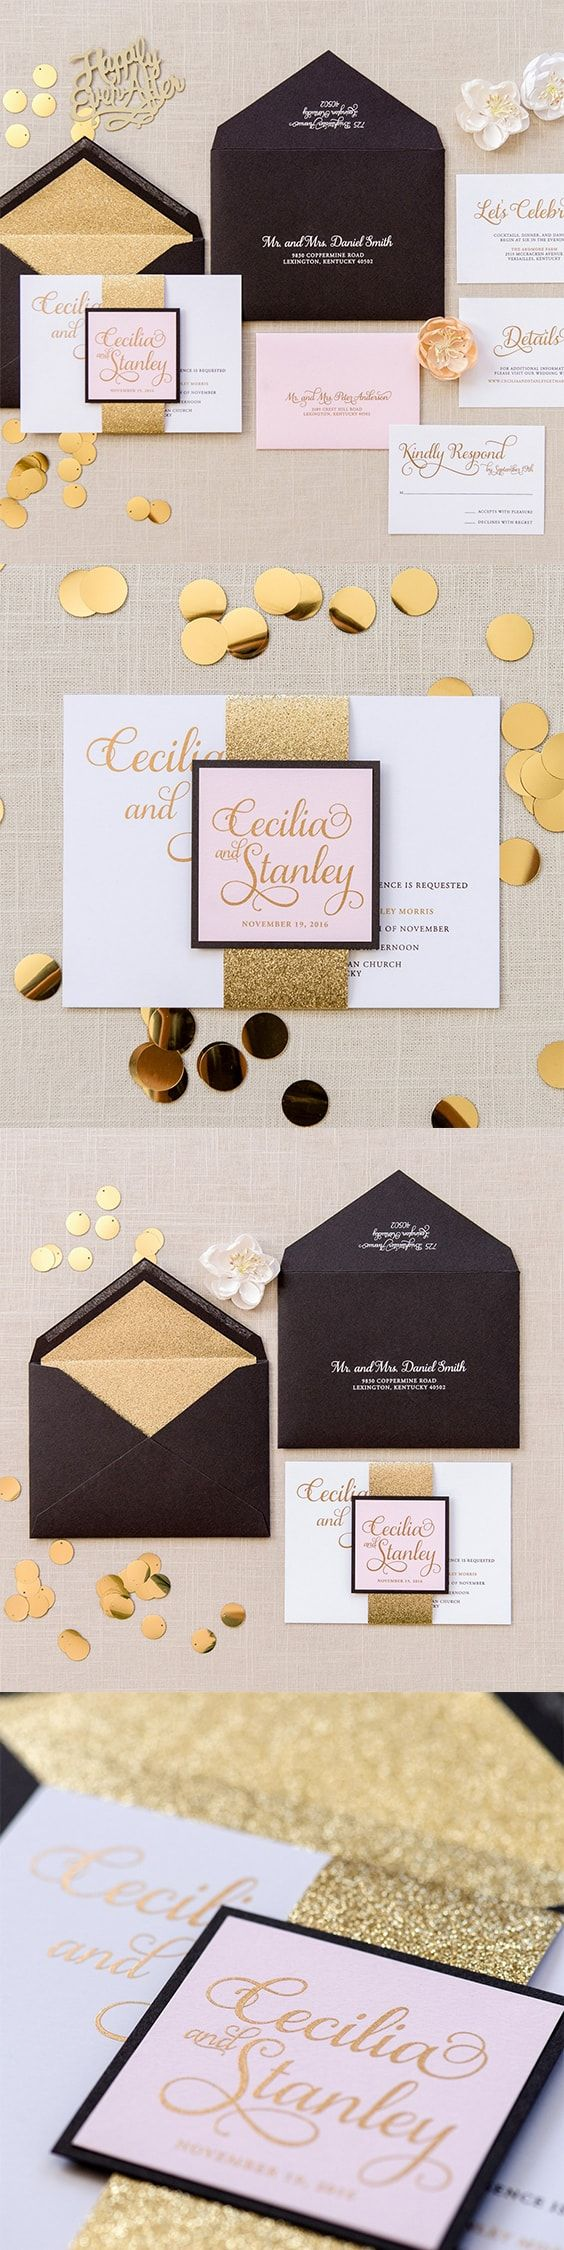 Glitter Bellyband Wedding Invitation Cecilia Wedding